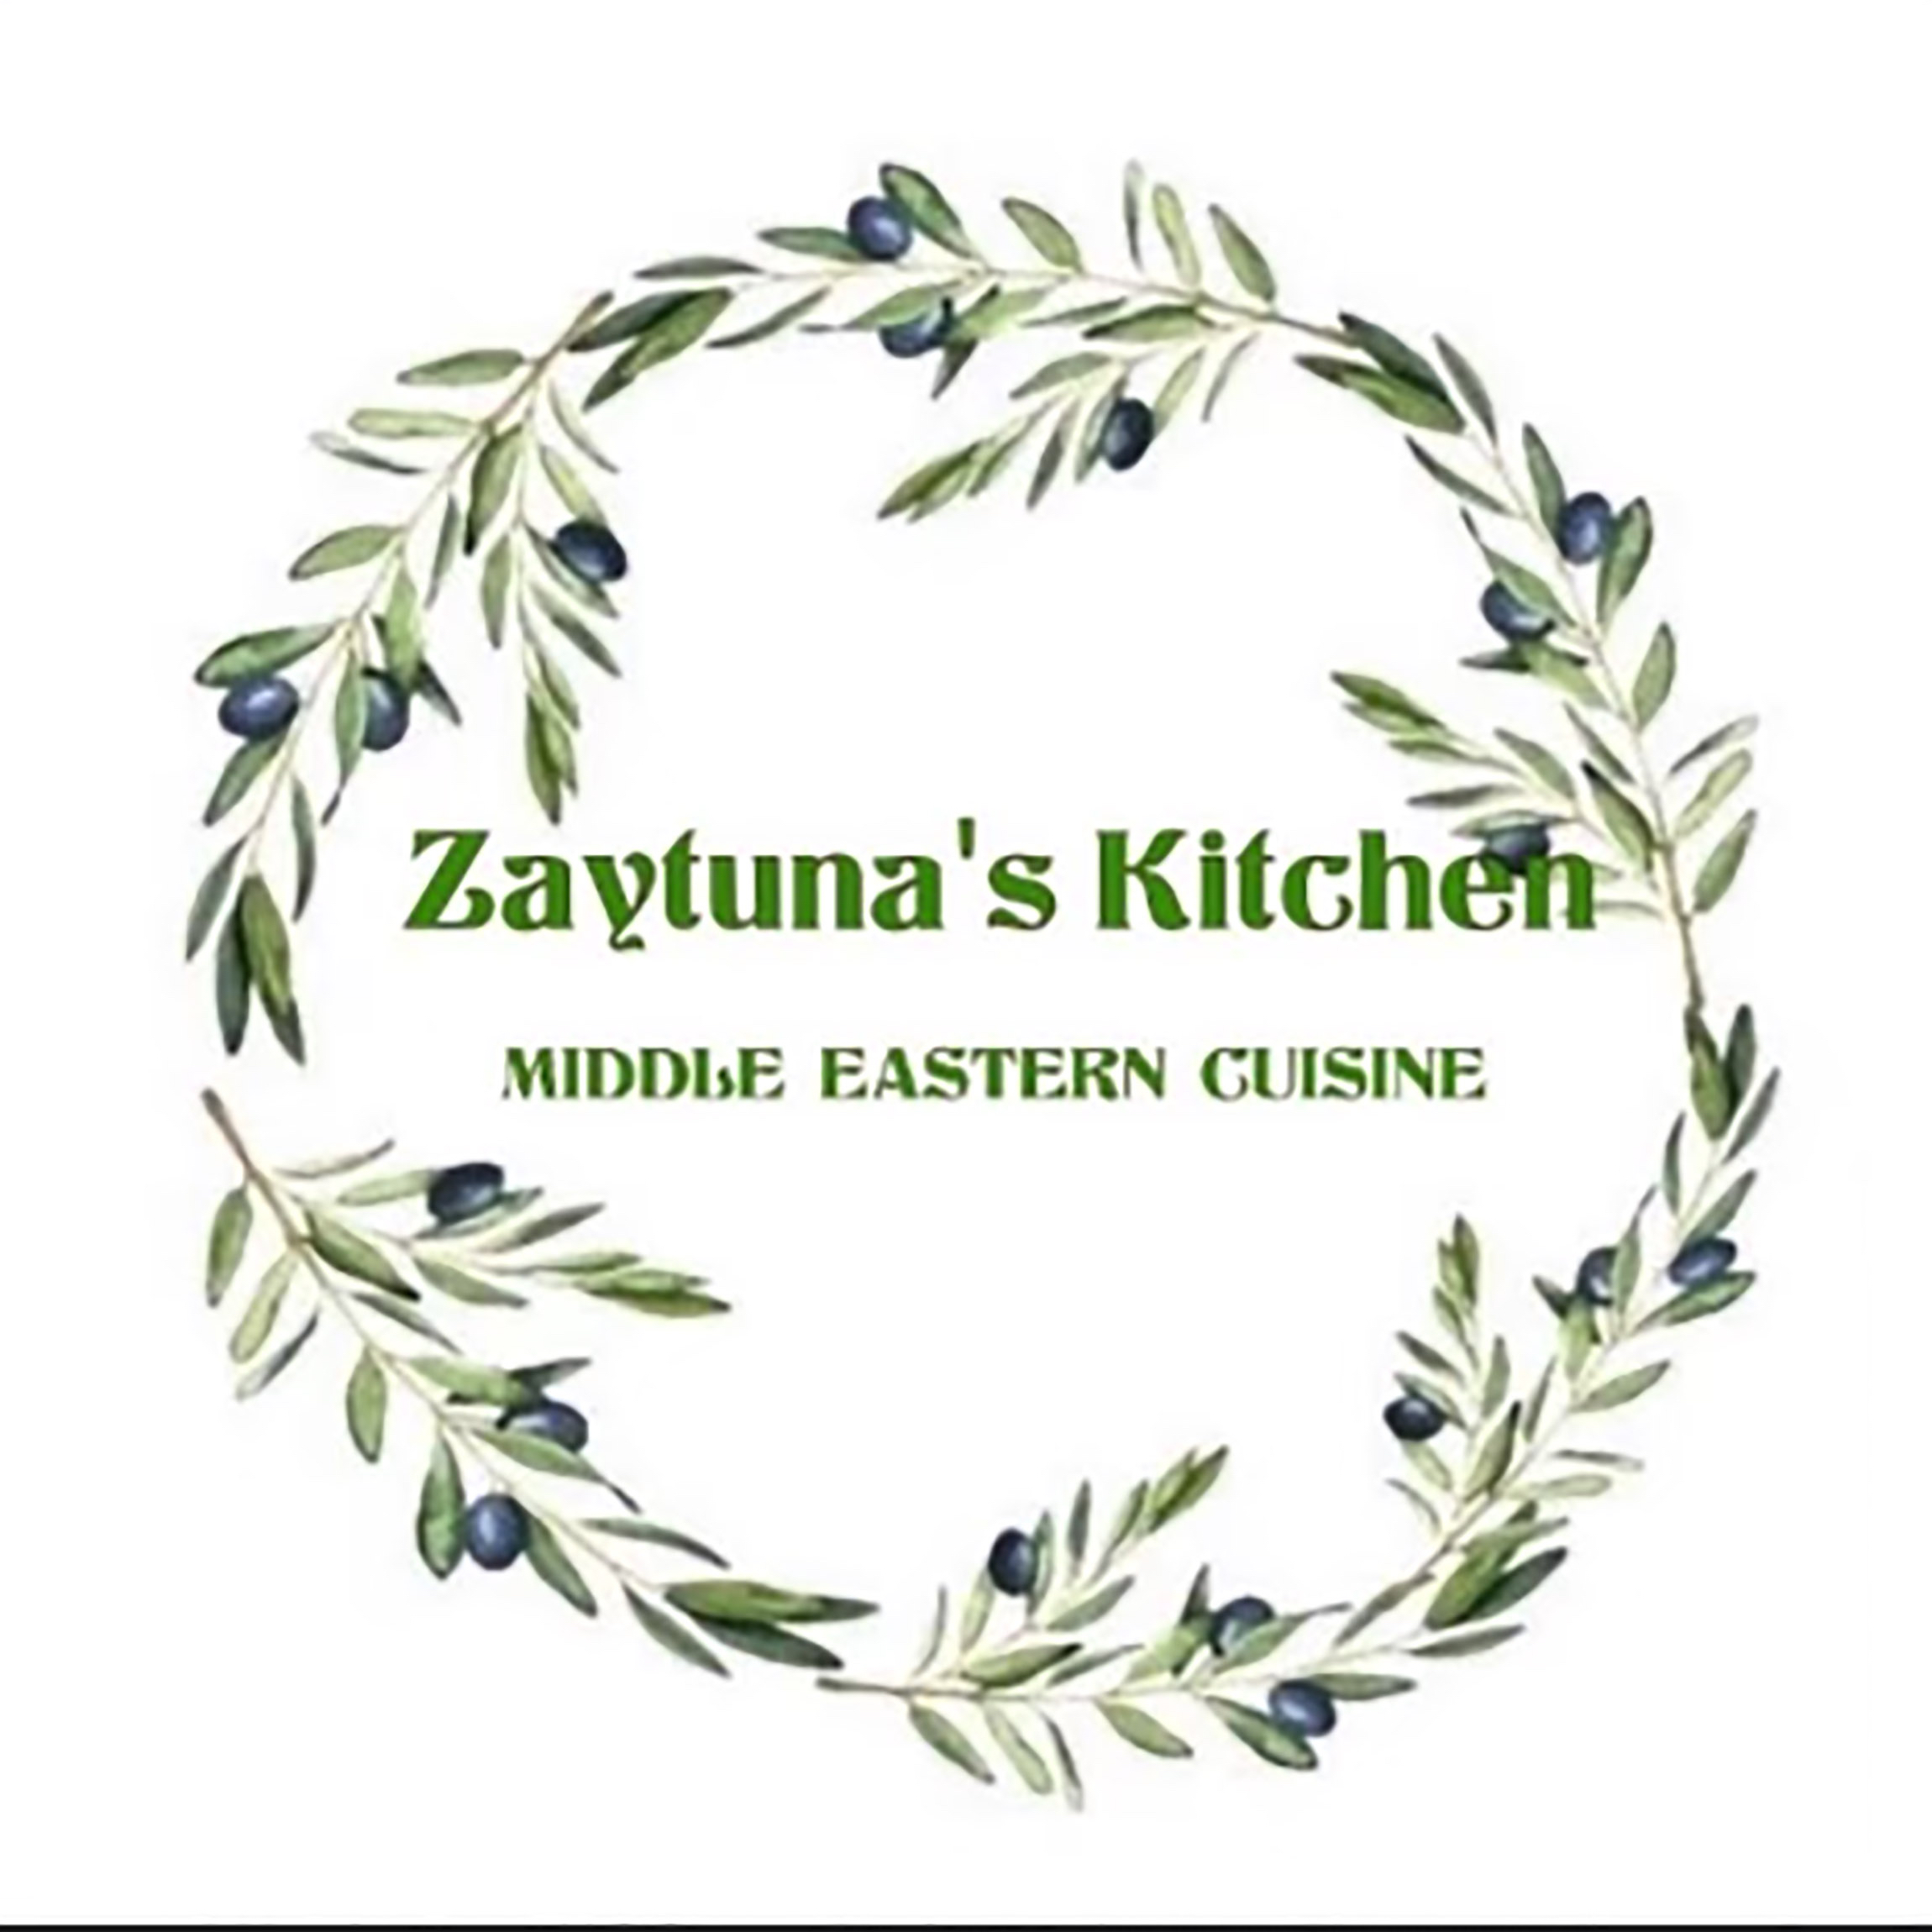 Zaytuna's Kitchen